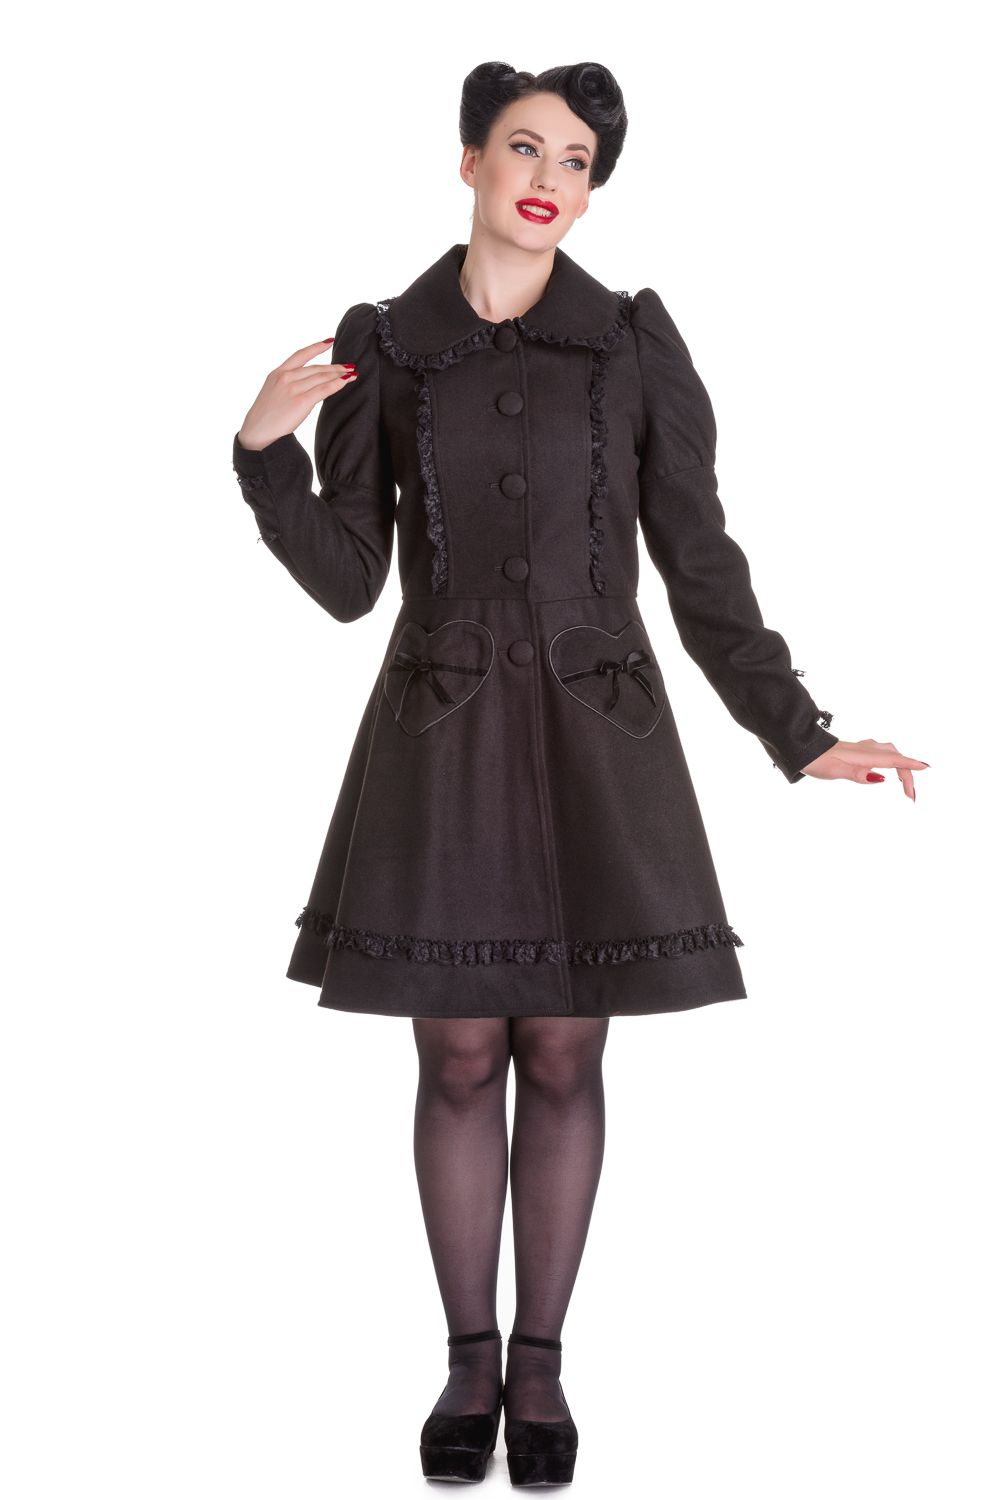 ps8063blk_manteau-pin-up-retro-50s-lolita-courtney